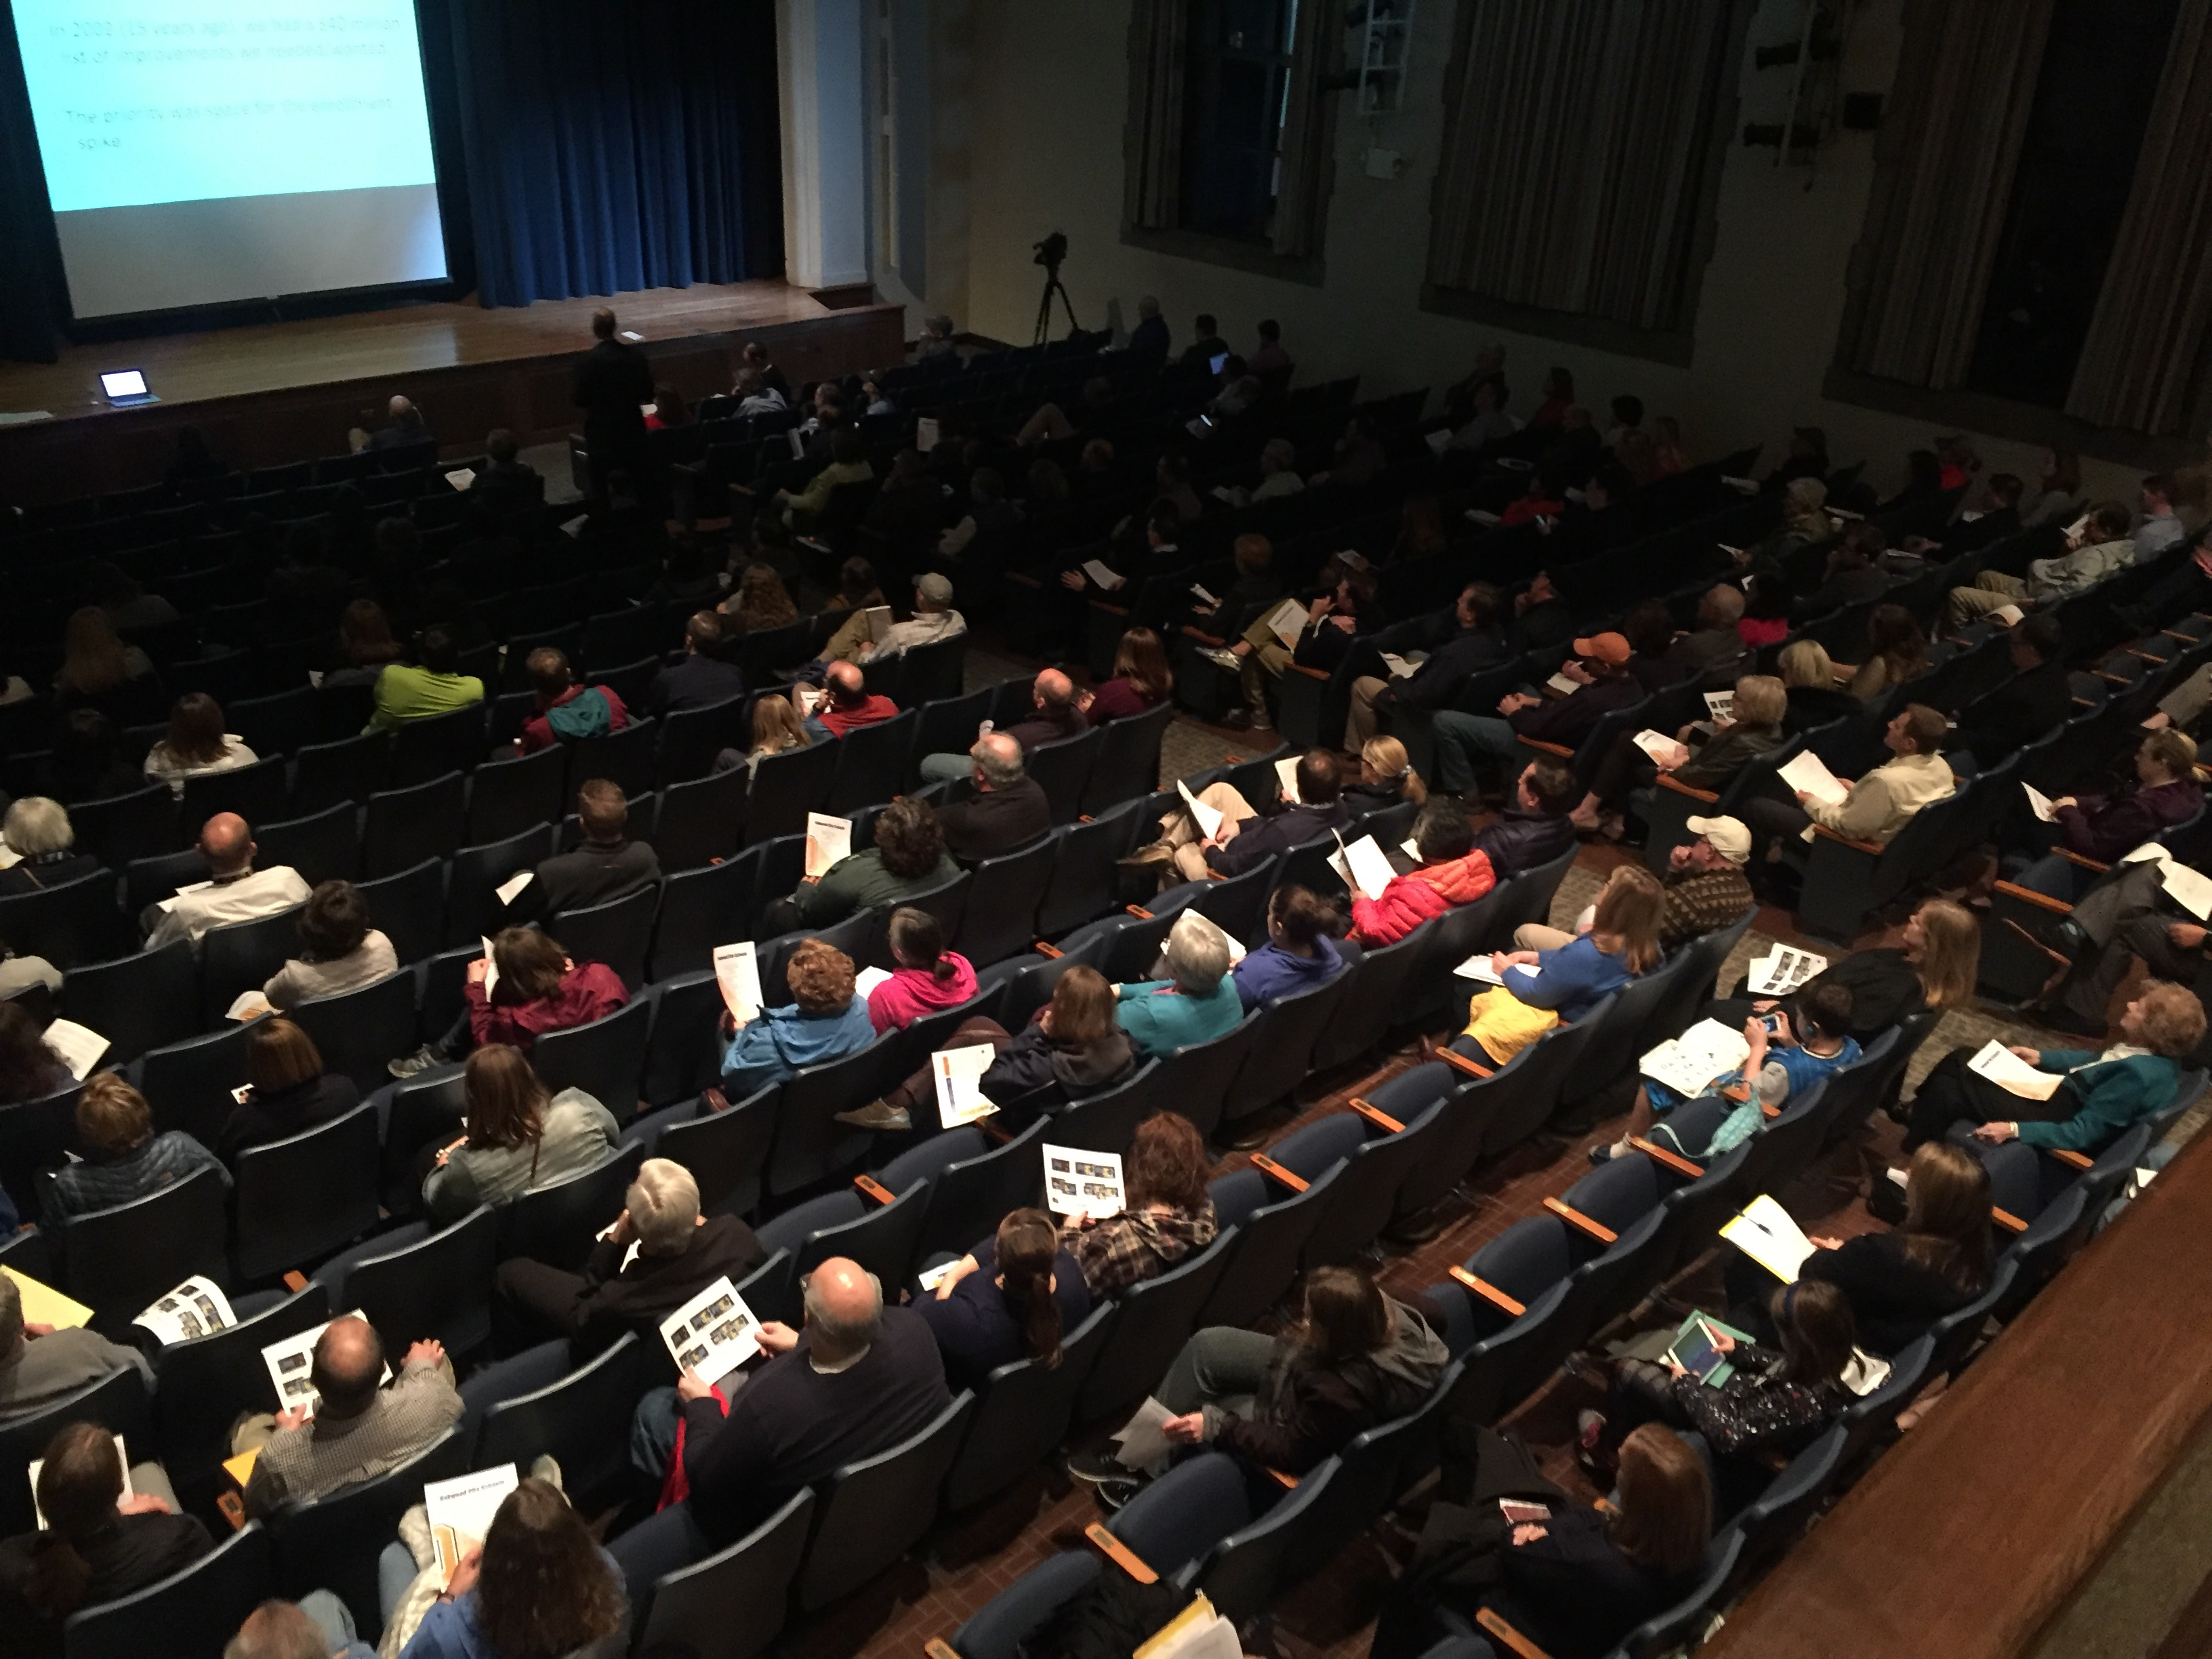 Nearly 200 people attended Community Meeting #3 in the OHS auditorium